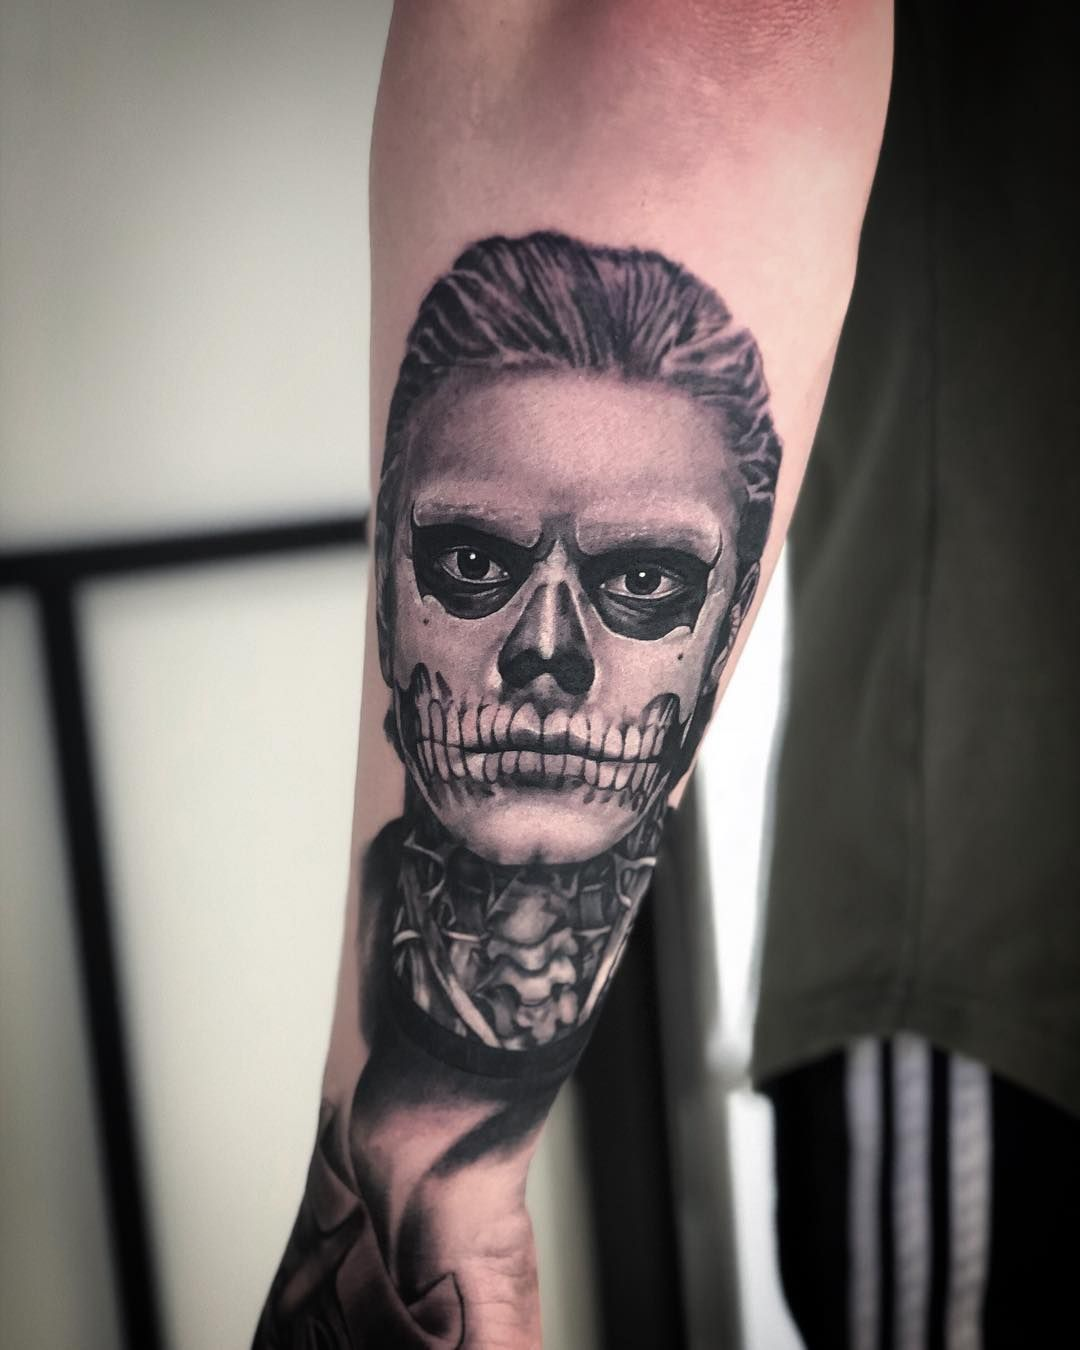 Gareth Watson On Instagram Evanpeters Tate Portrait From American Horror Story I Did Proudly Spo Story Tattoo Horror Tattoo American Horror Story Tattoo